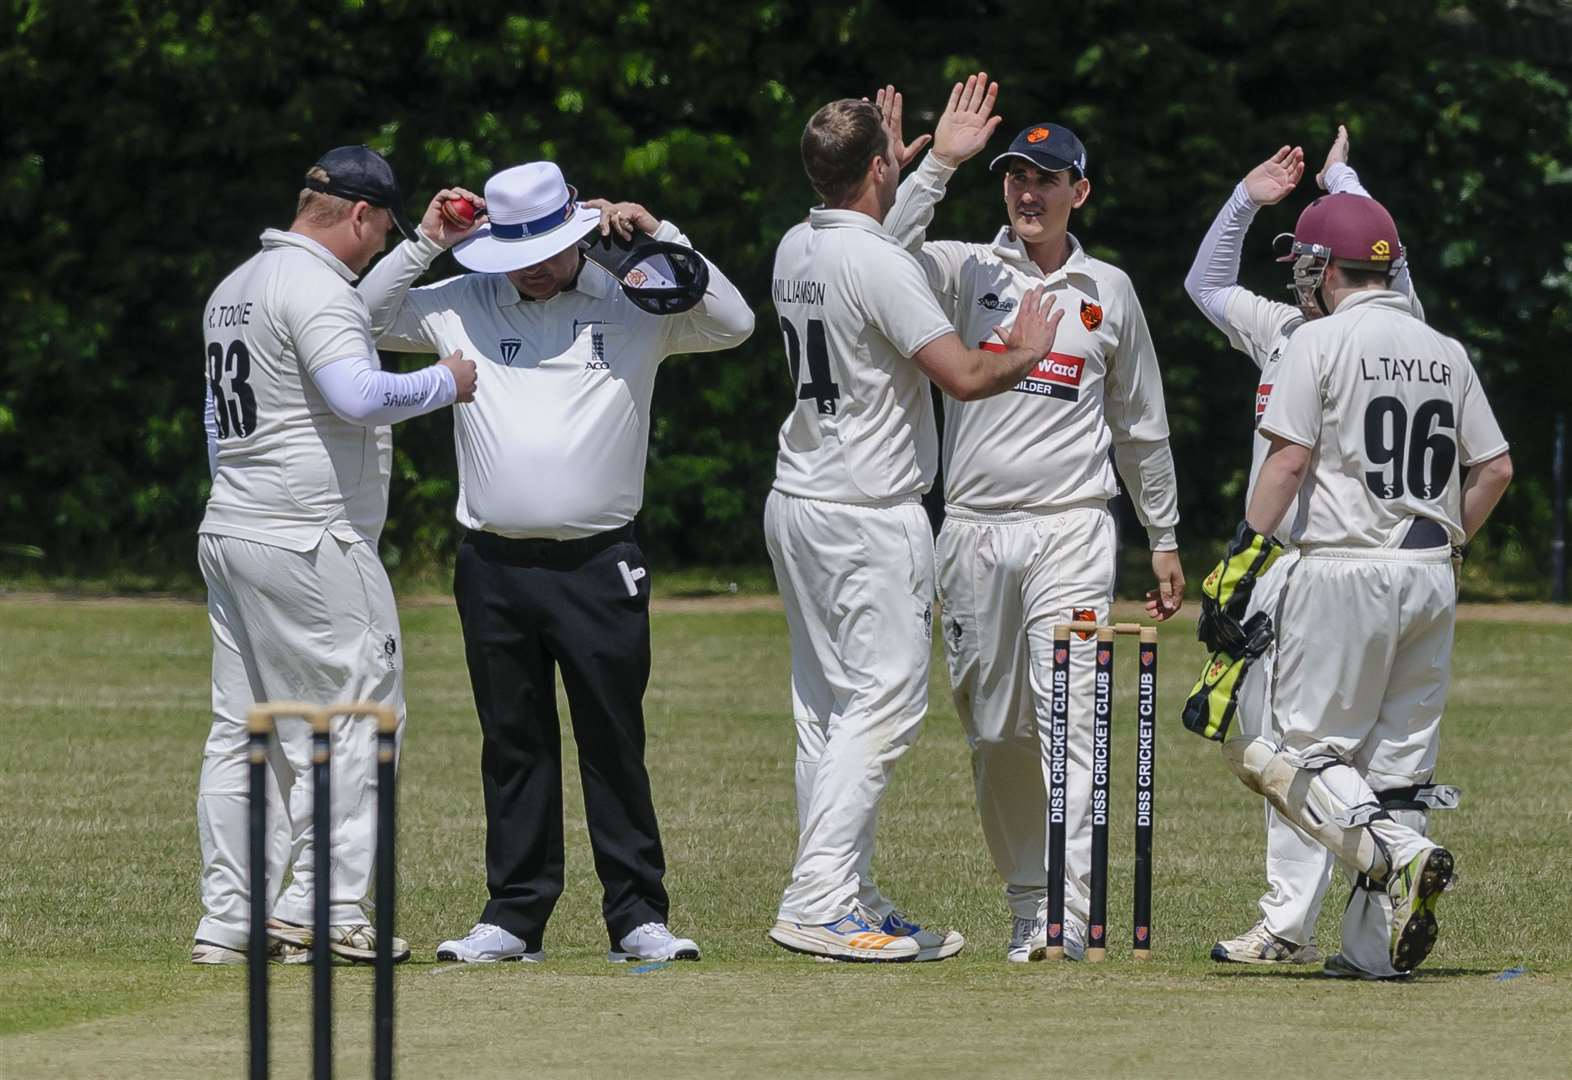 Diss looking to build following first victory